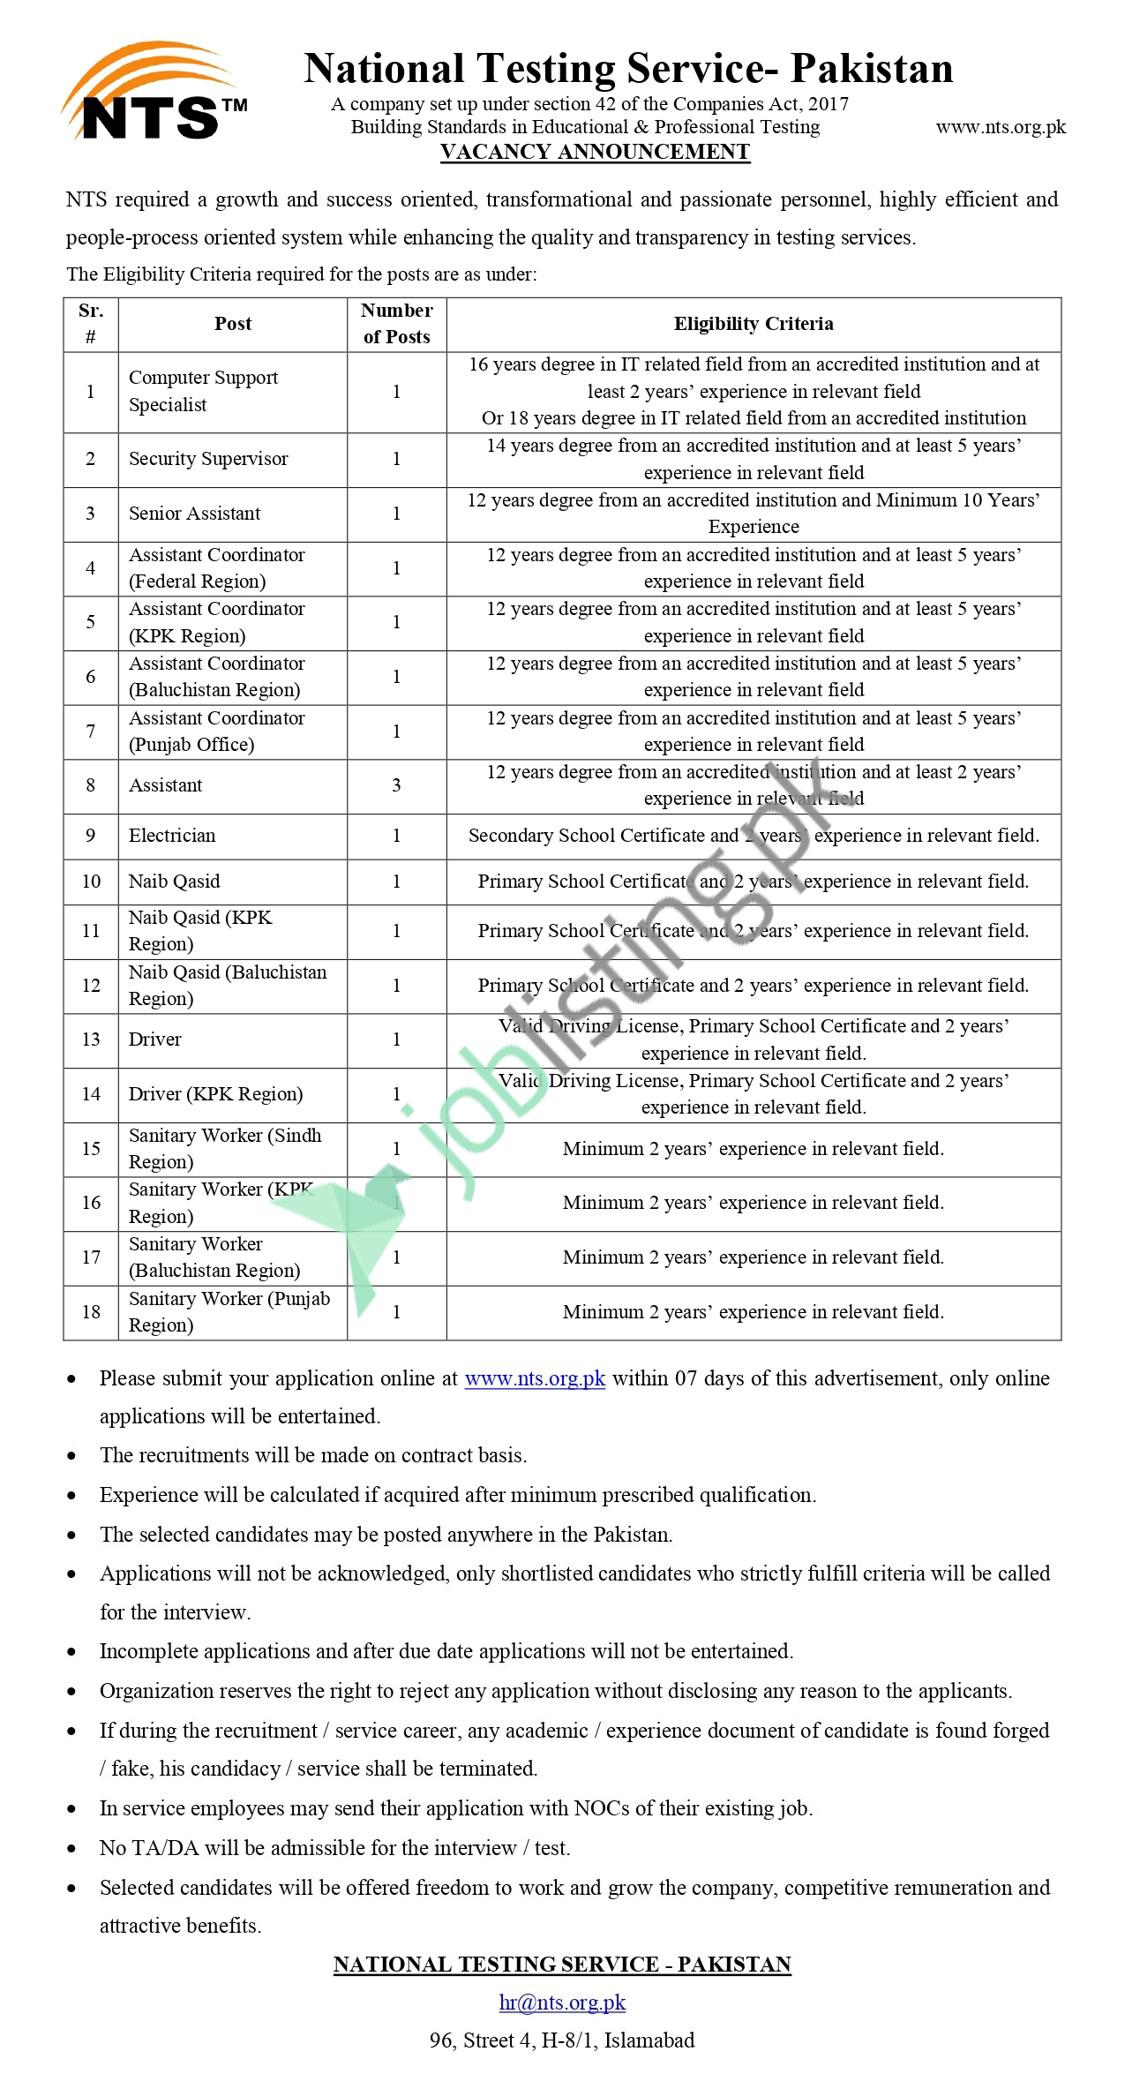 Situation Vacant - National Testing Service Pakistan Jobs 2021